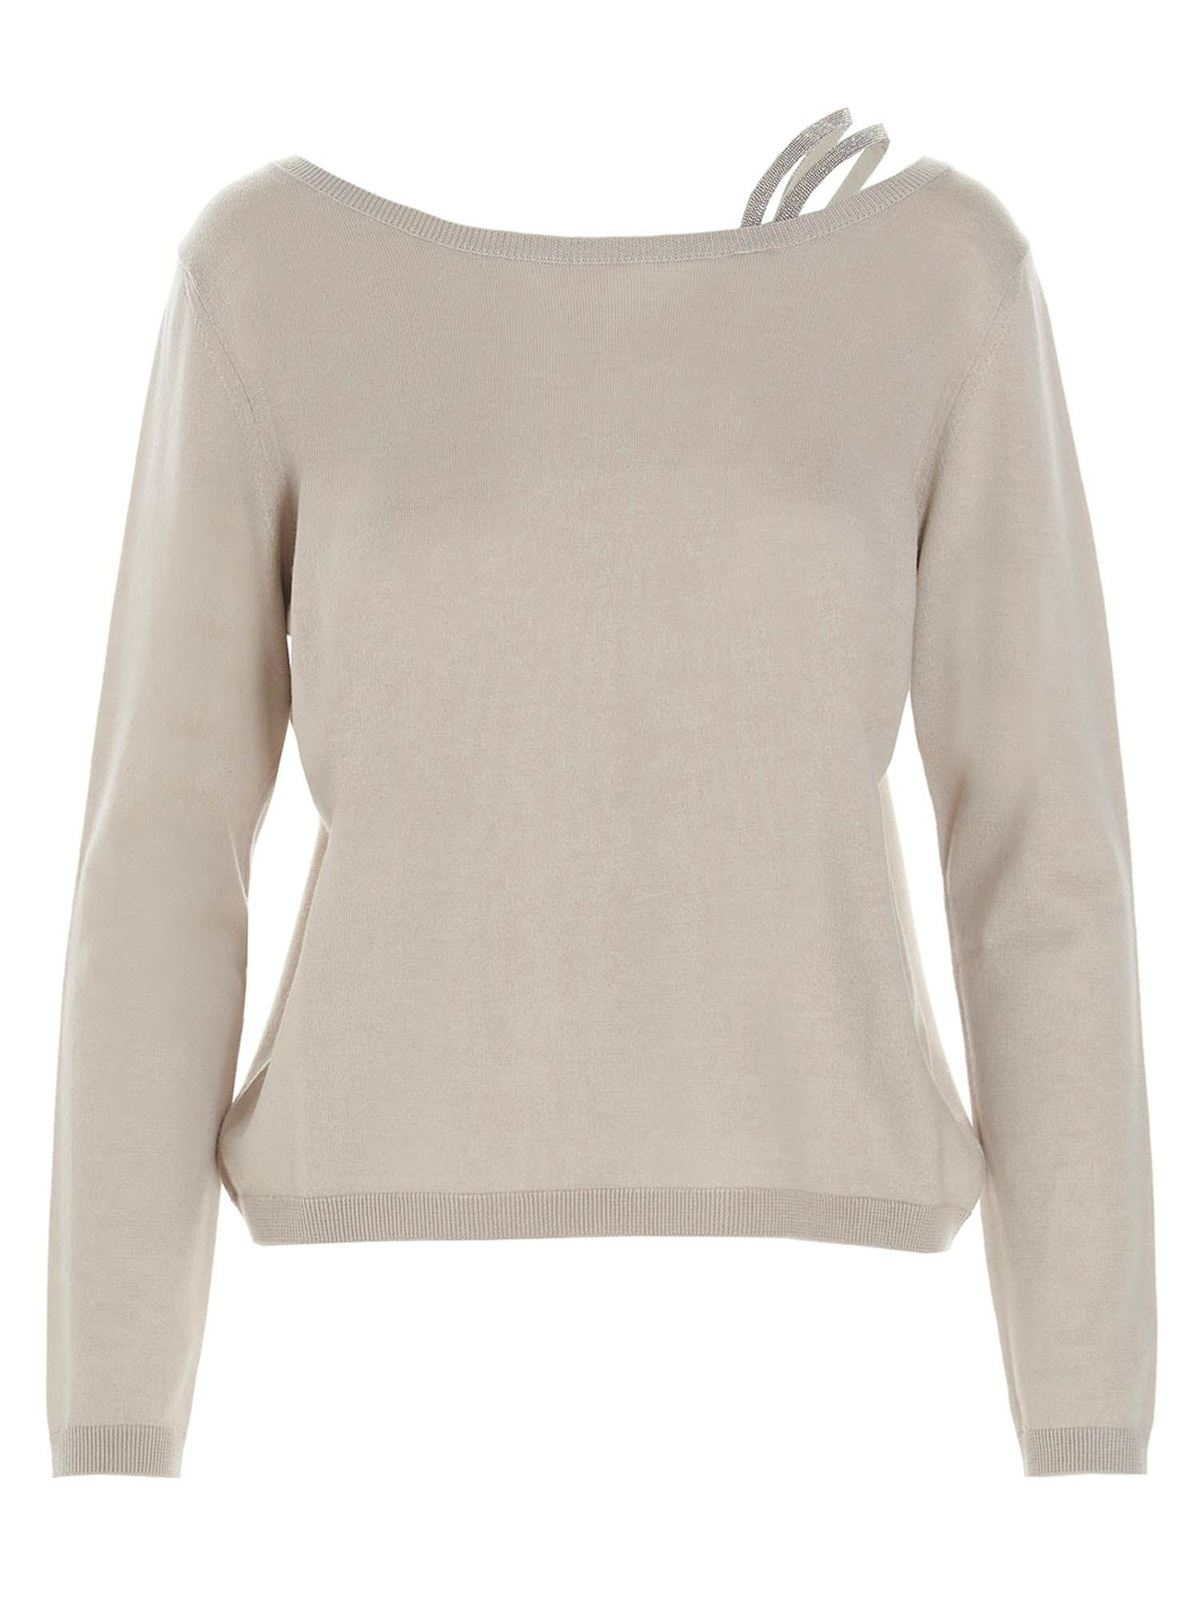 Fabiana Filippi SEQUIN INSERT SWEATER IN BEIGE